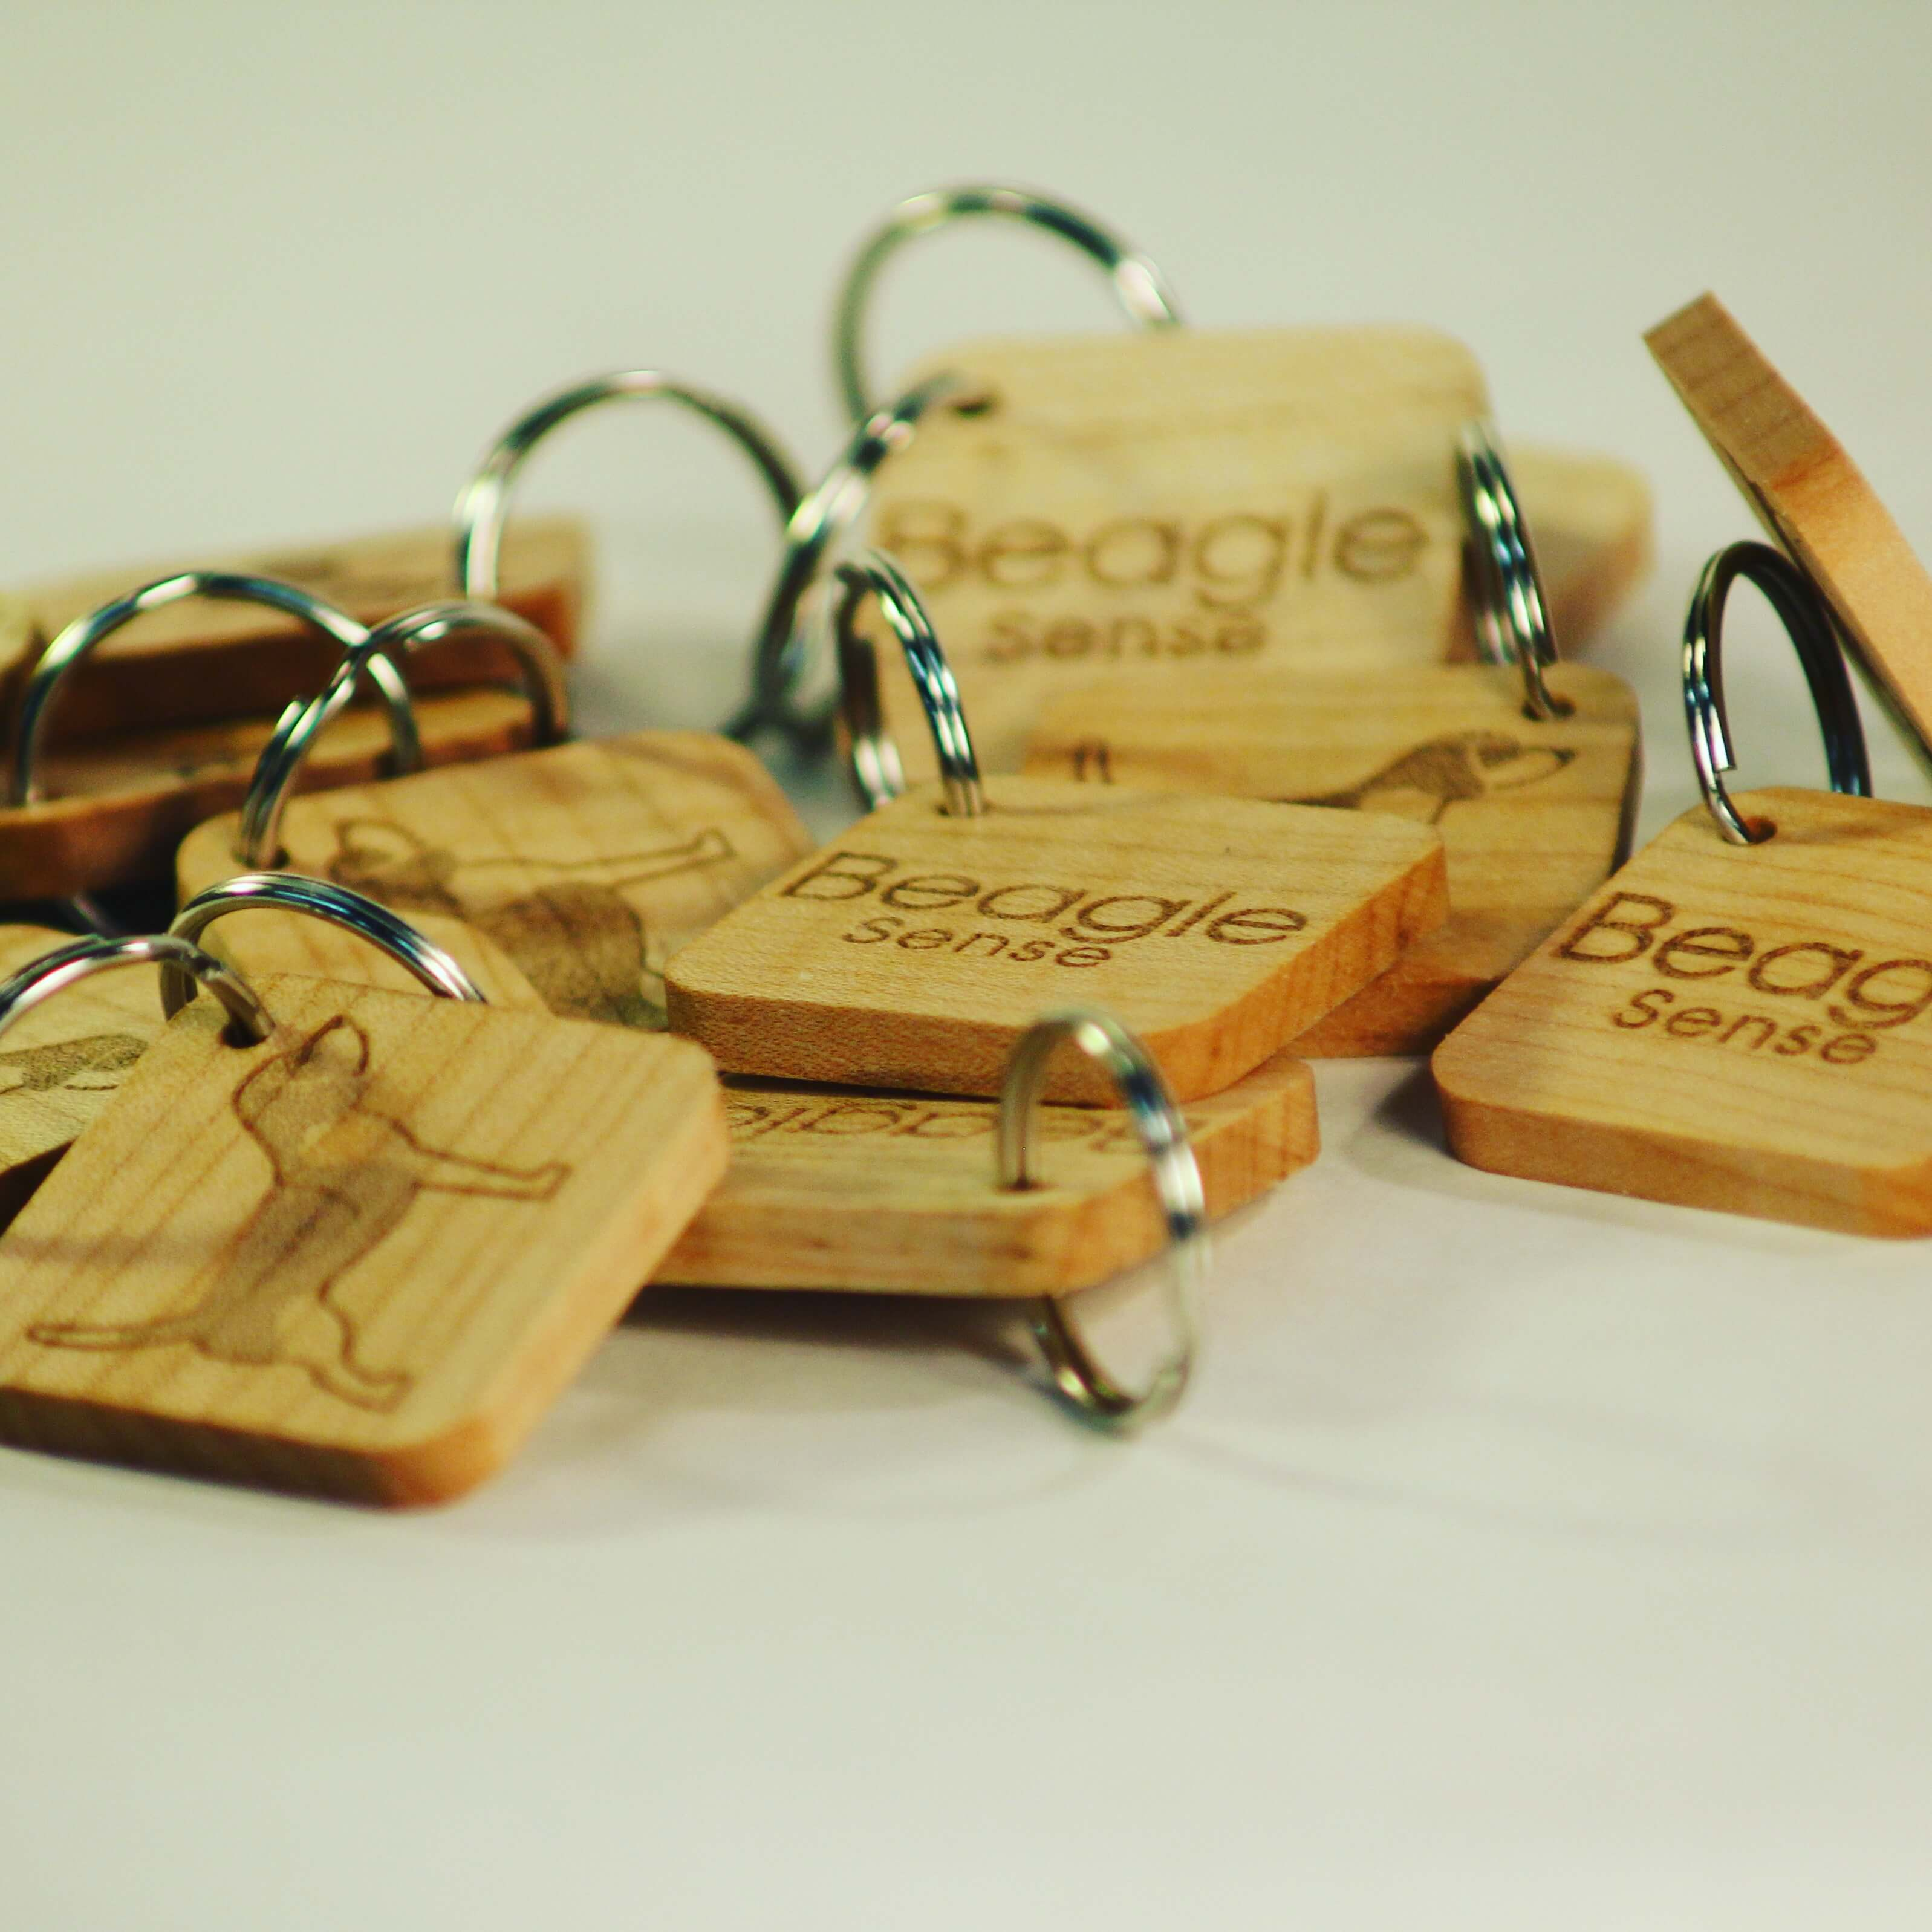 Keychain. Custom wood CNC keychain. Laser wood keychain. Ottawa Ontartio, Canada. All Things Made. Custom swag promo merch merchandise event. Beagel Sense.